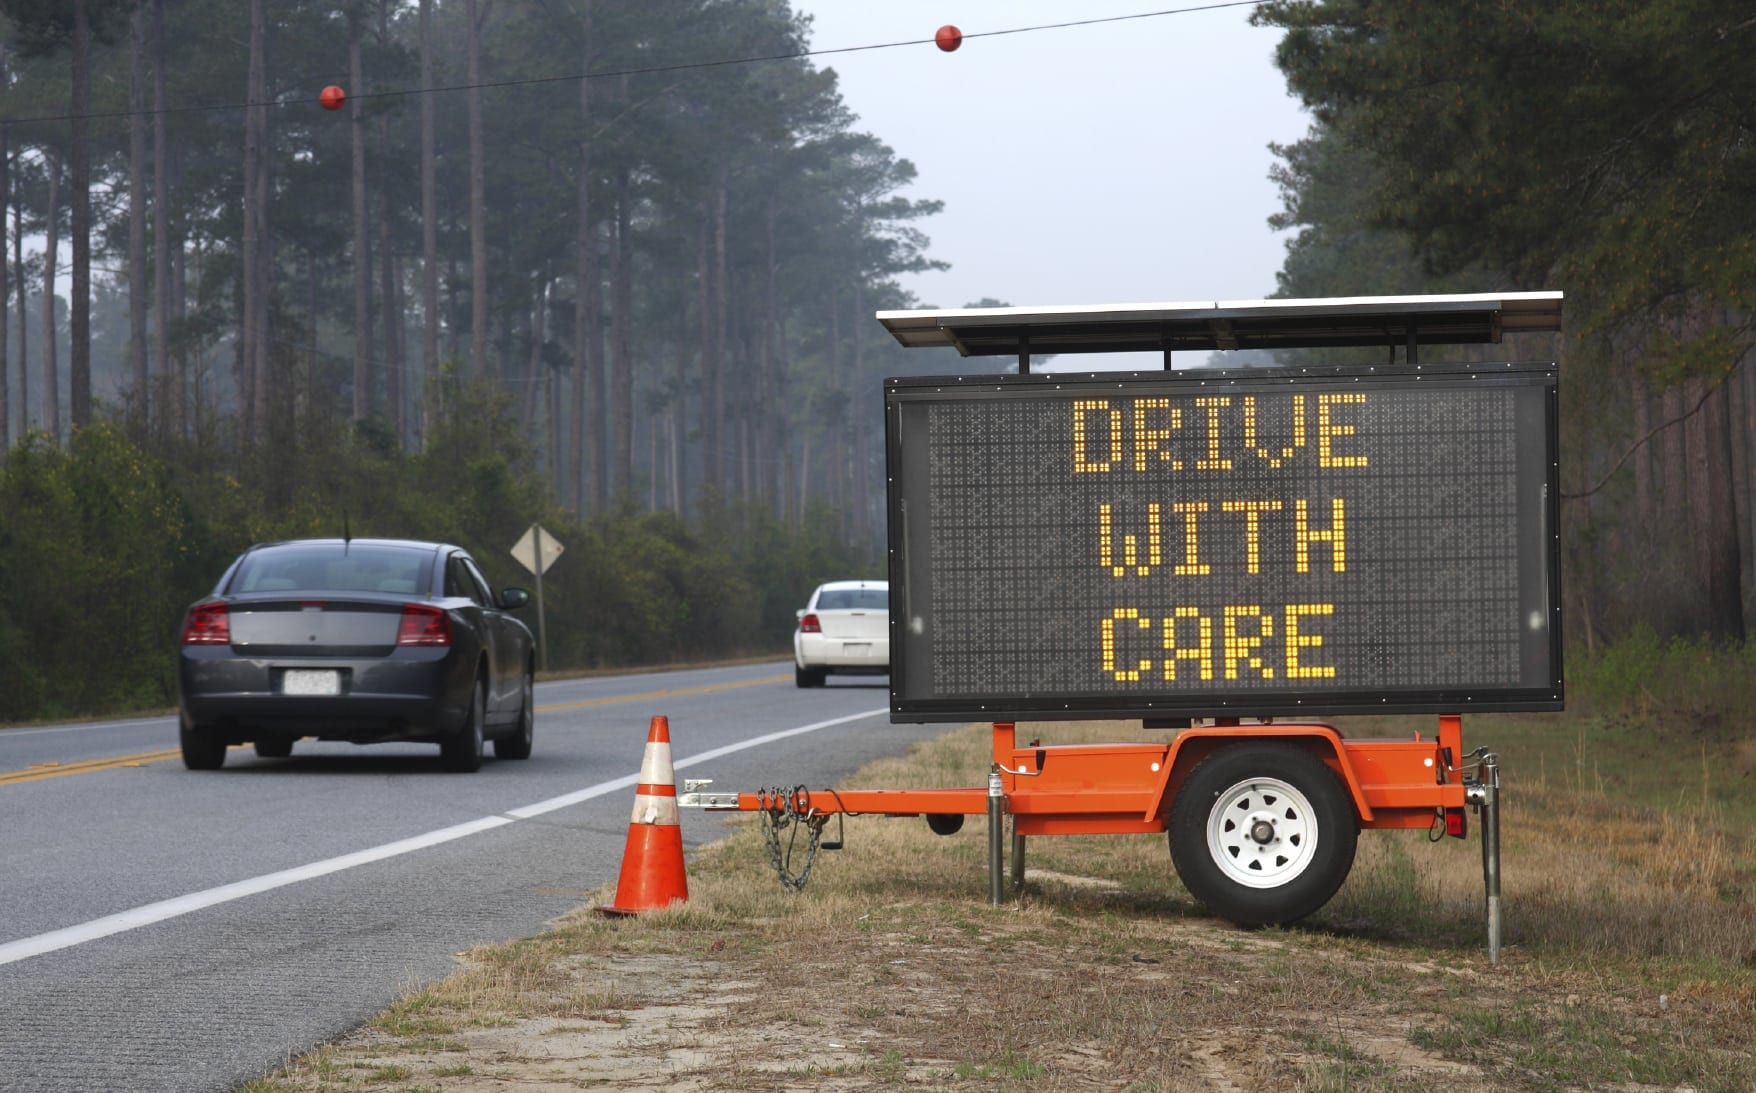 Drive With Care Warning Sign Stock Photo